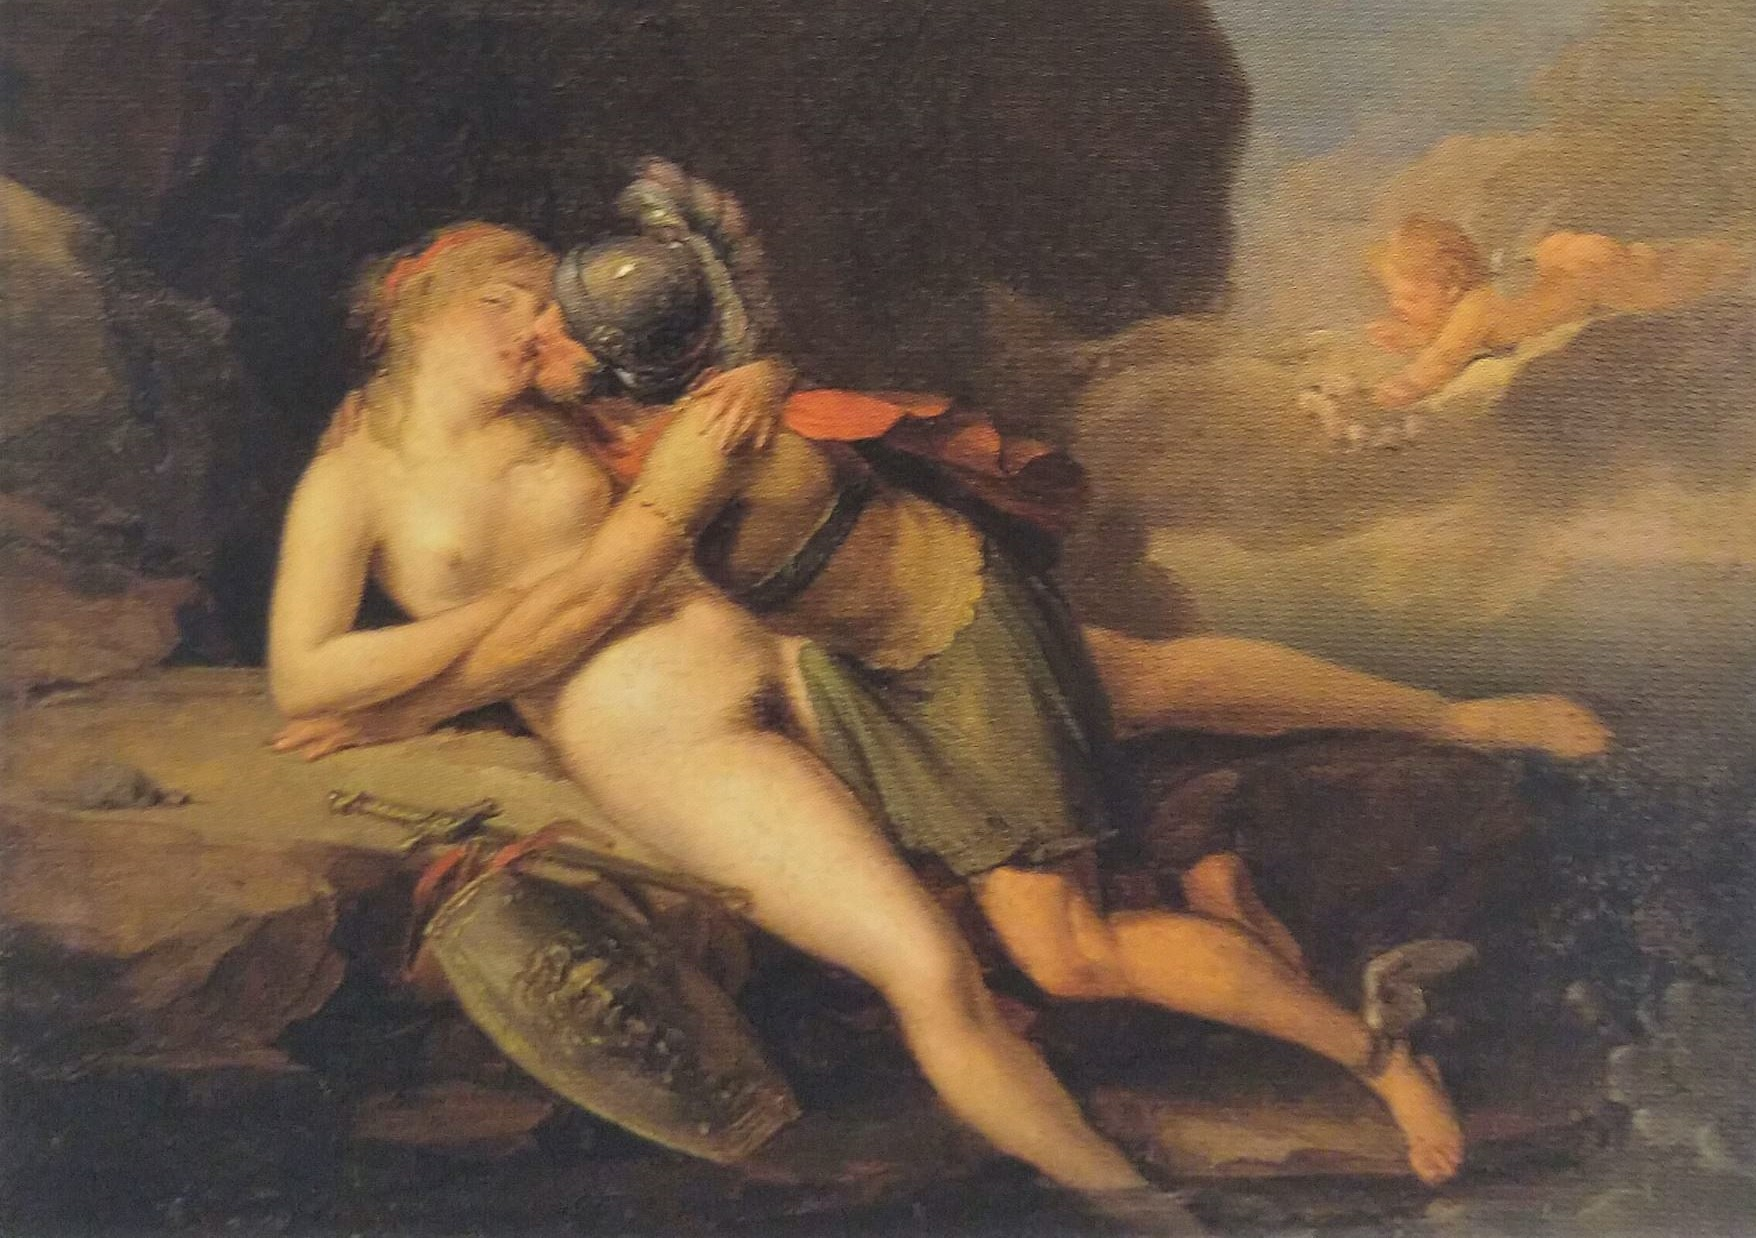 Boilly 1795-96 Persee et Andromede